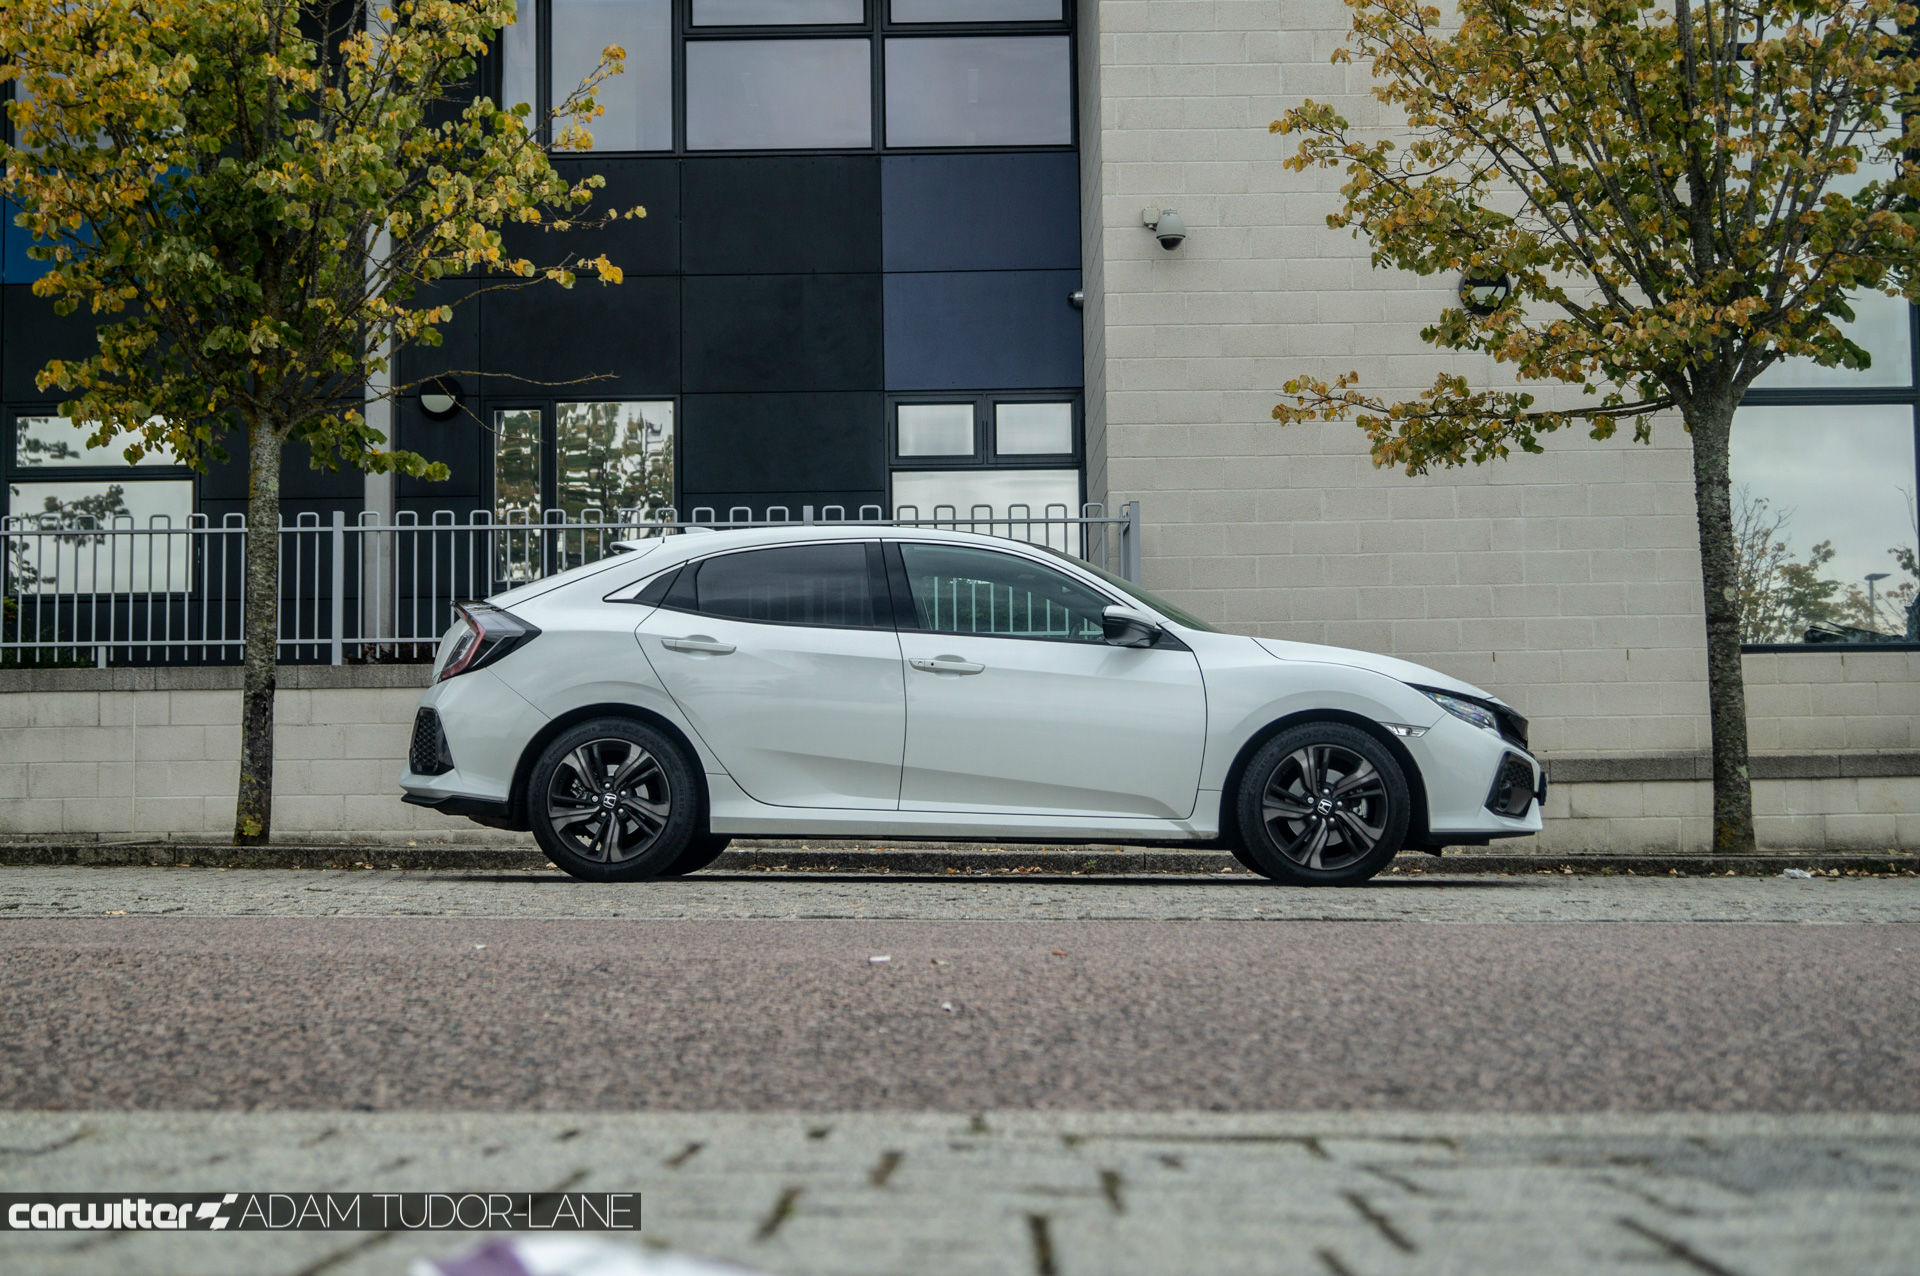 2018 Honda Civic 1.6 i DTEC Review Side carwitter - 2018 Honda Civic 1.6 i-DTEC Review - 2018 Honda Civic 1.6 i-DTEC Review